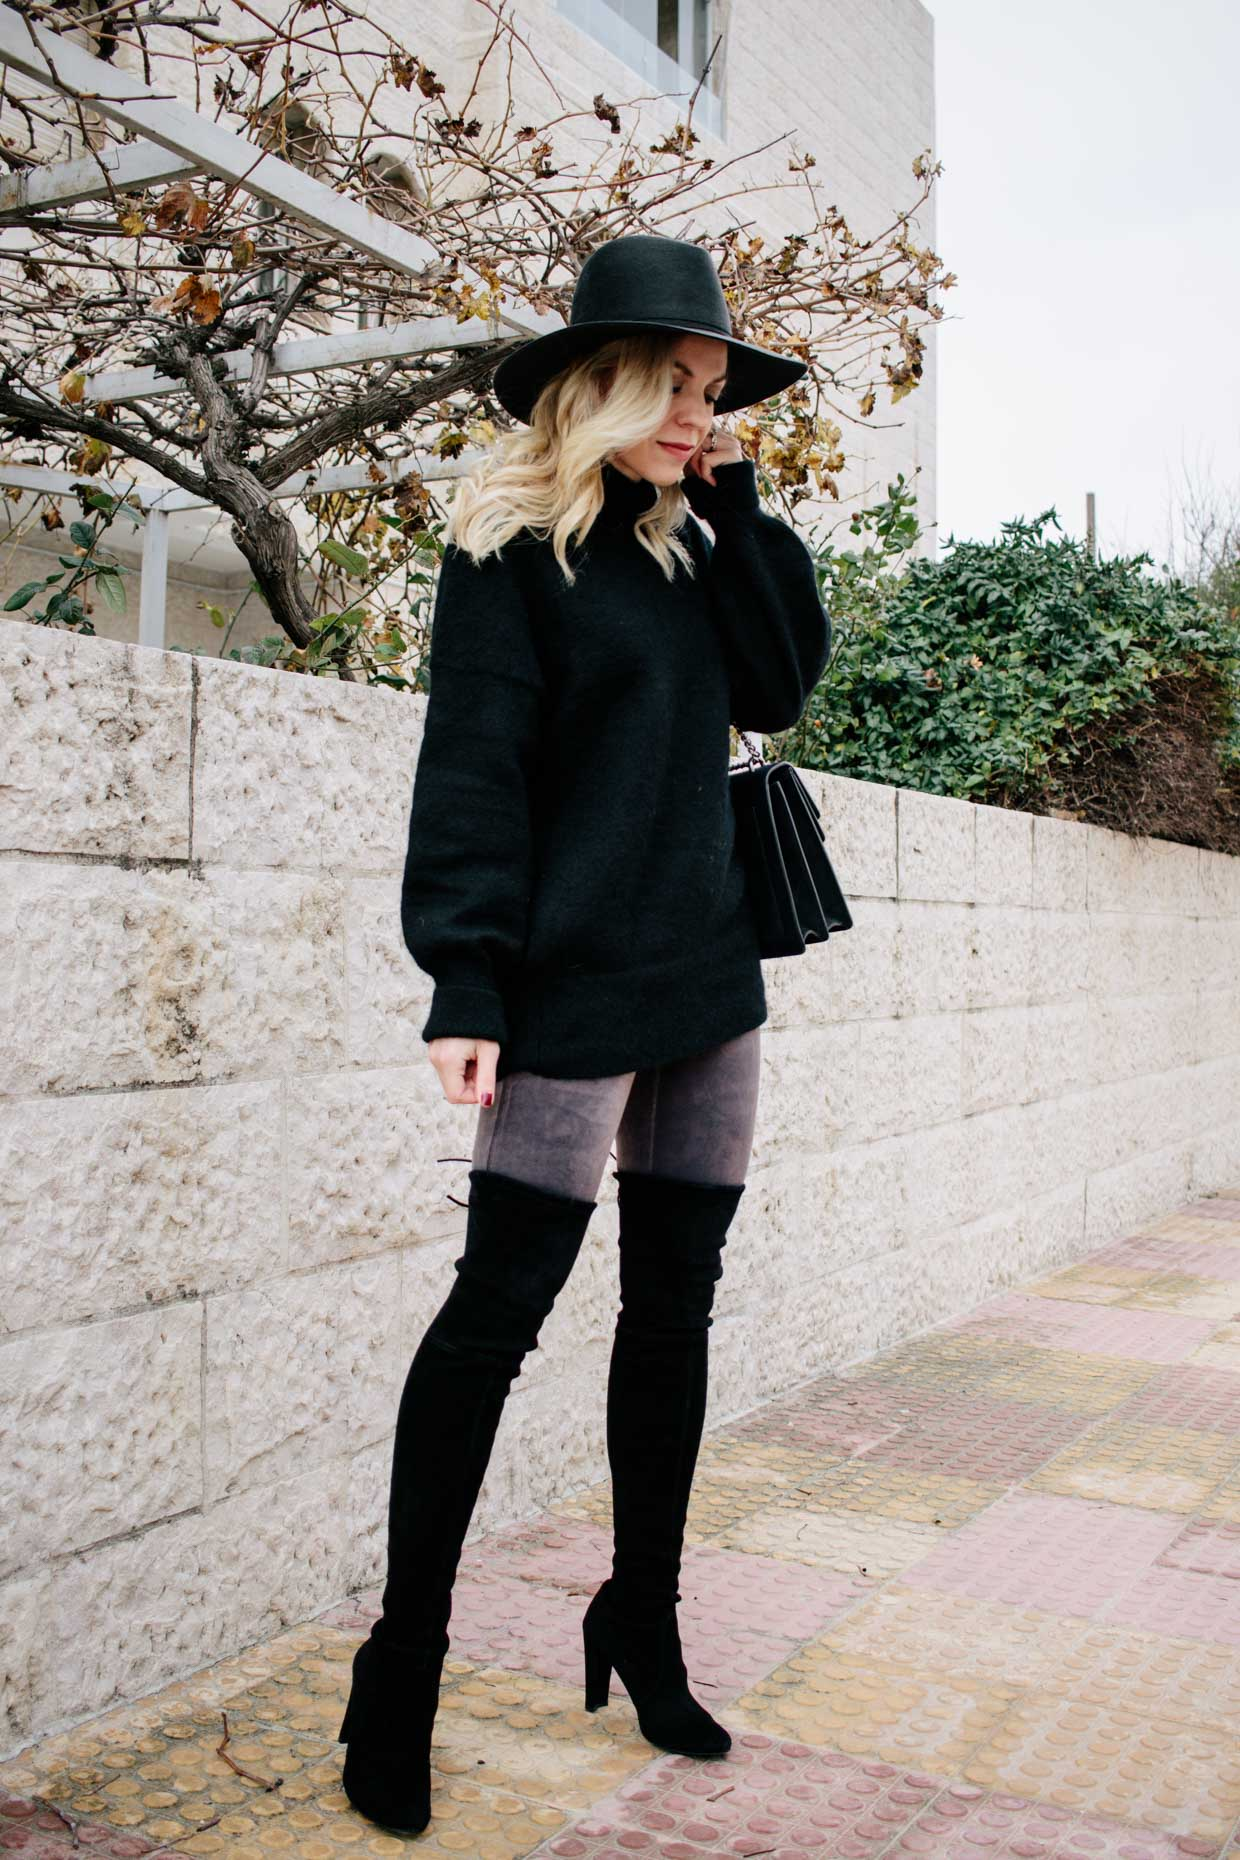 Purchase Black Velvet Leggings Outfit Up To 65 Off